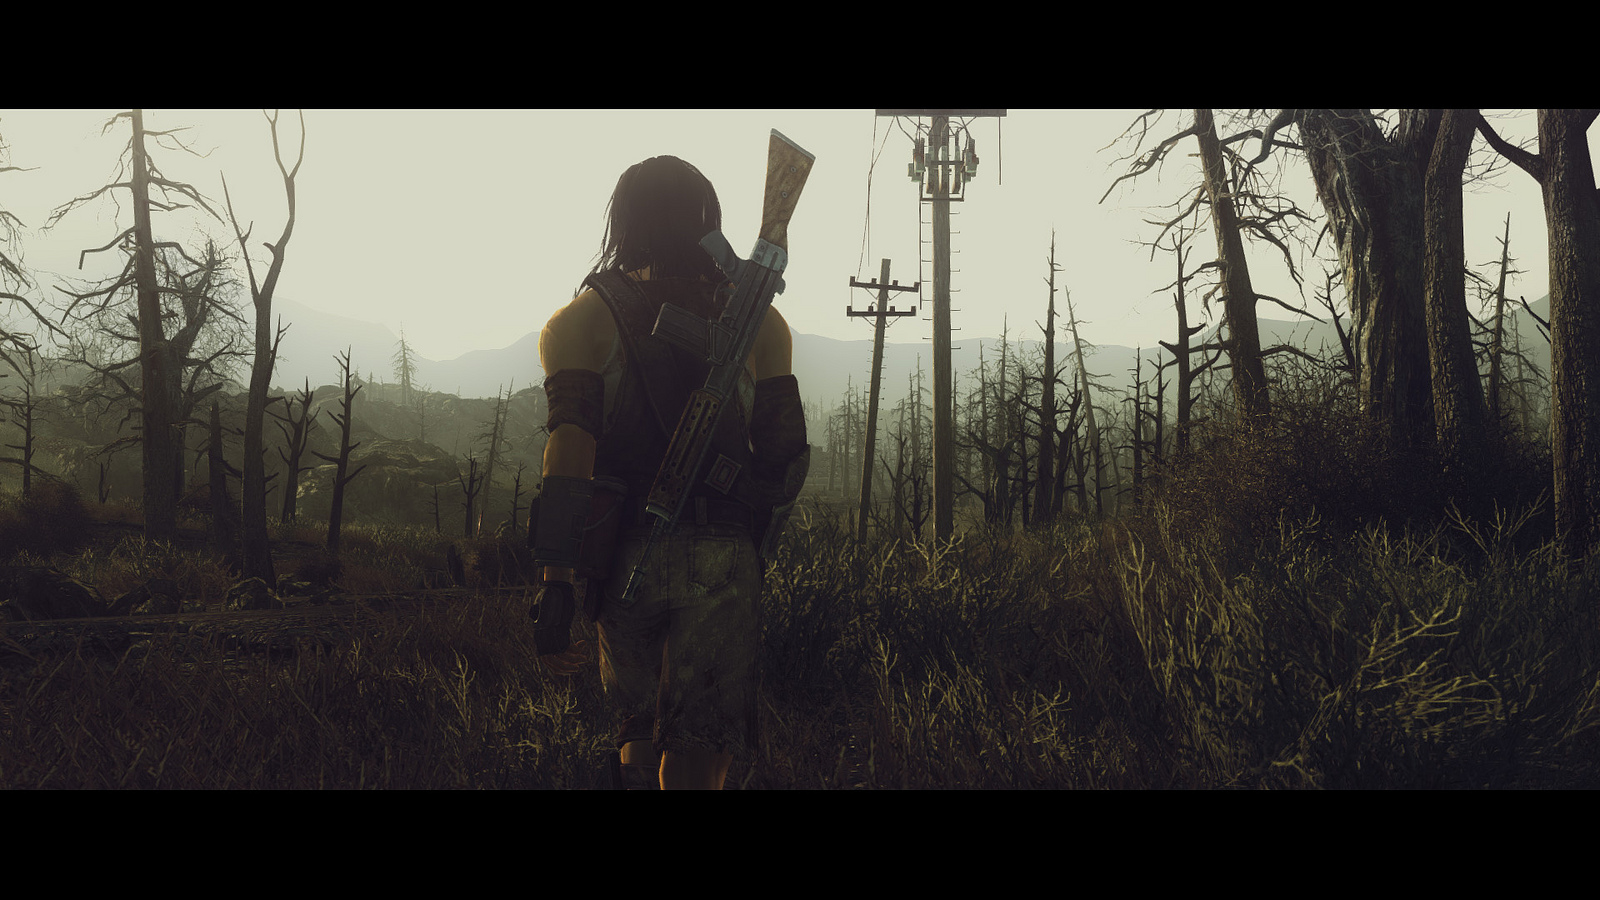 Fallout 3 Never Looked This Good - New Screenshots With